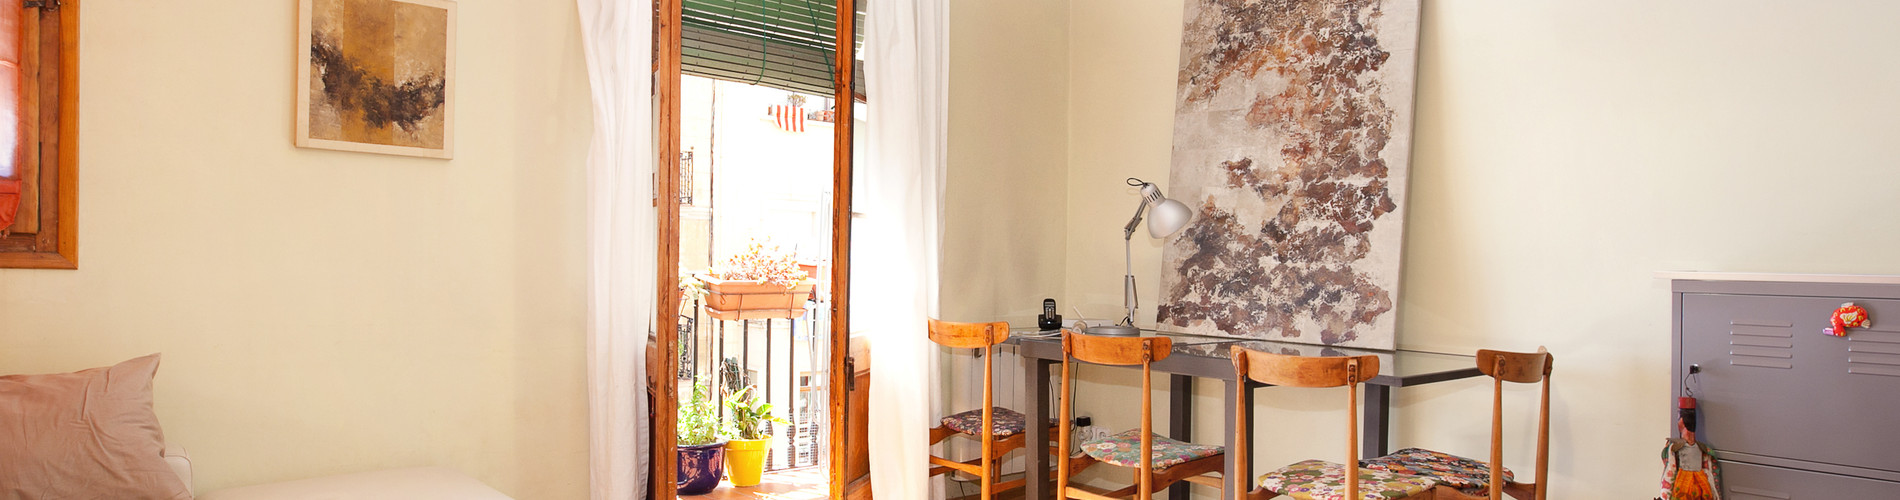 Vacation Rental Authentic flat in Poble Sec - Paralelo